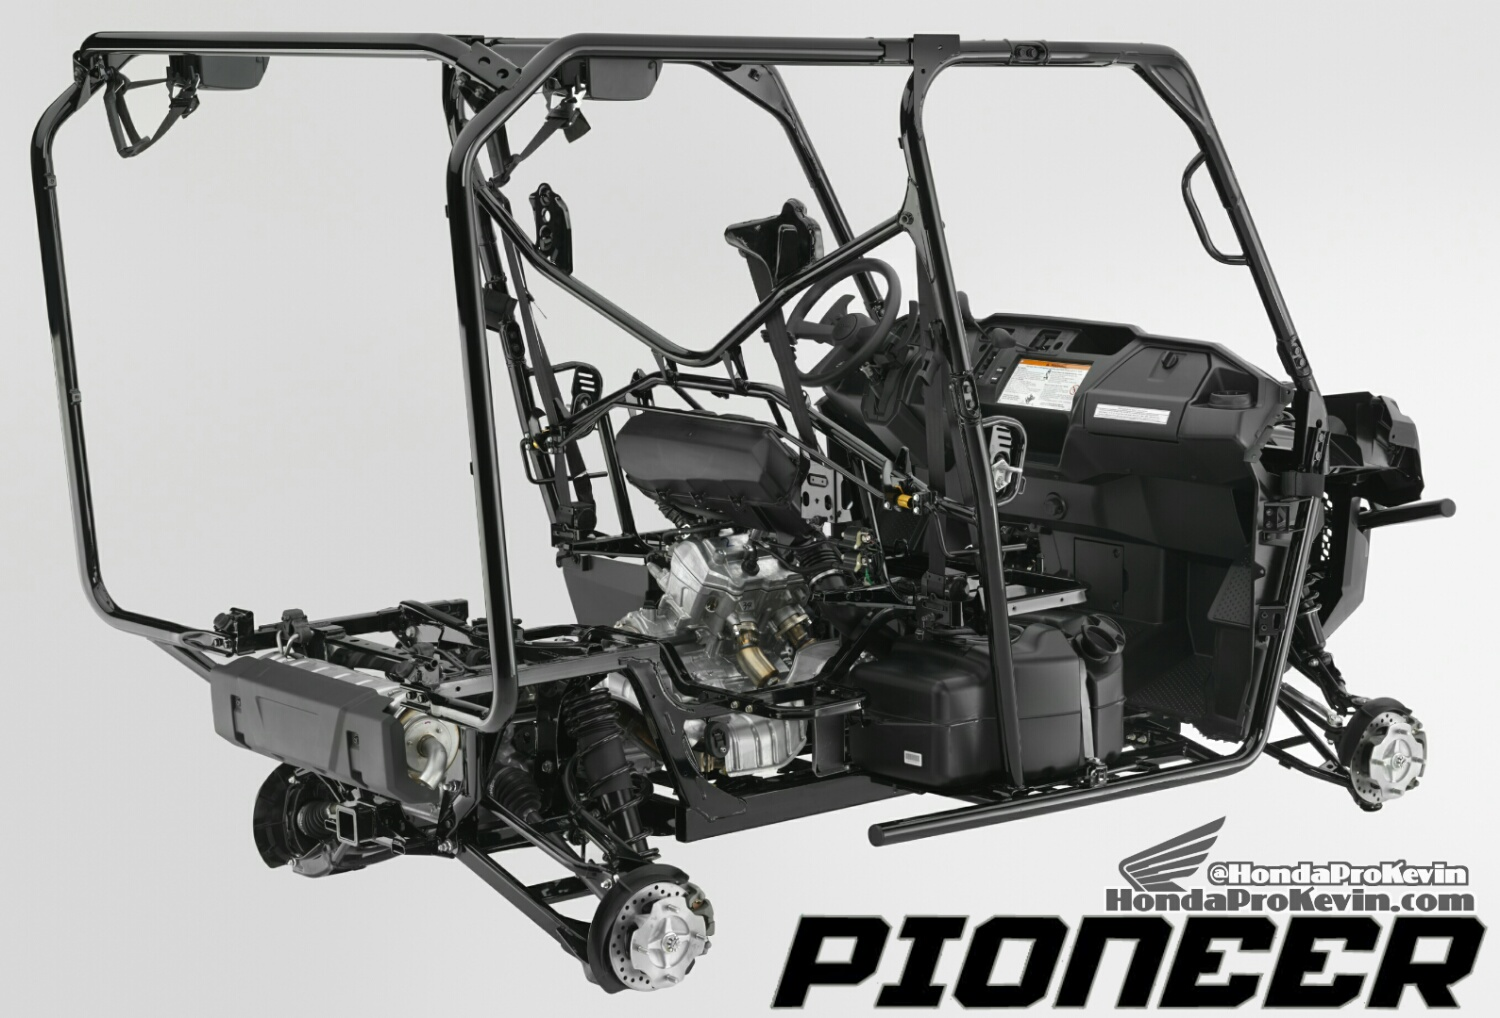 2018 Honda Pioneer 1000 Base Model Review Specs Detailed 2003 Civic Engine Diagram Besides Addition Shadow 600 Frame Suspension Price Side By Atv